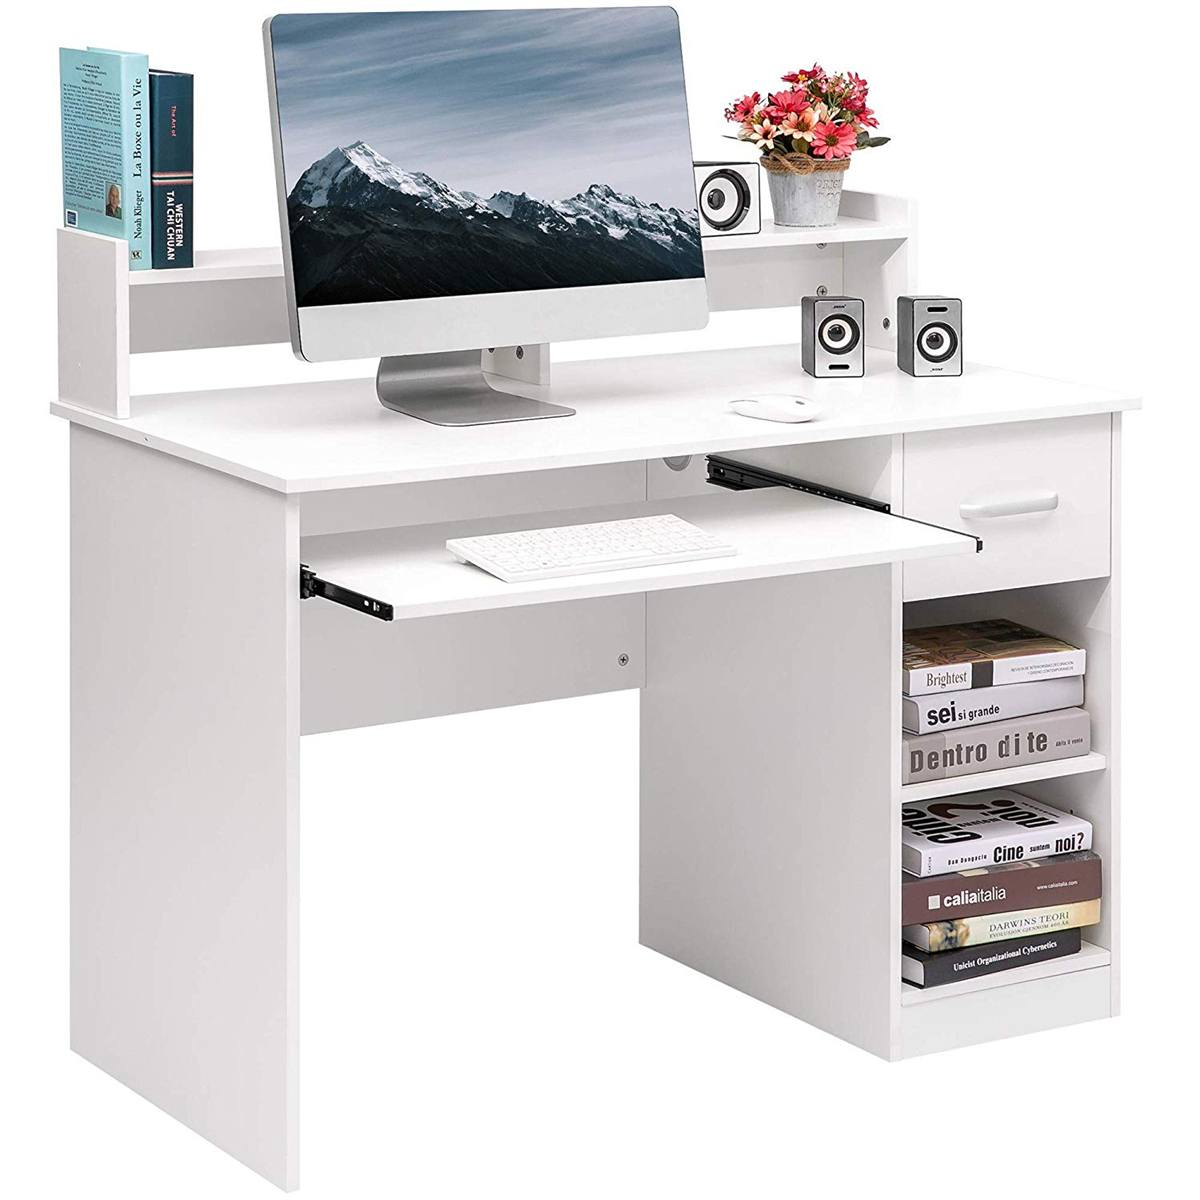 Computer Table Wooden Durable Computer Desk Laptop Table Desktop Desk For Home Office Working Study Table Furniture